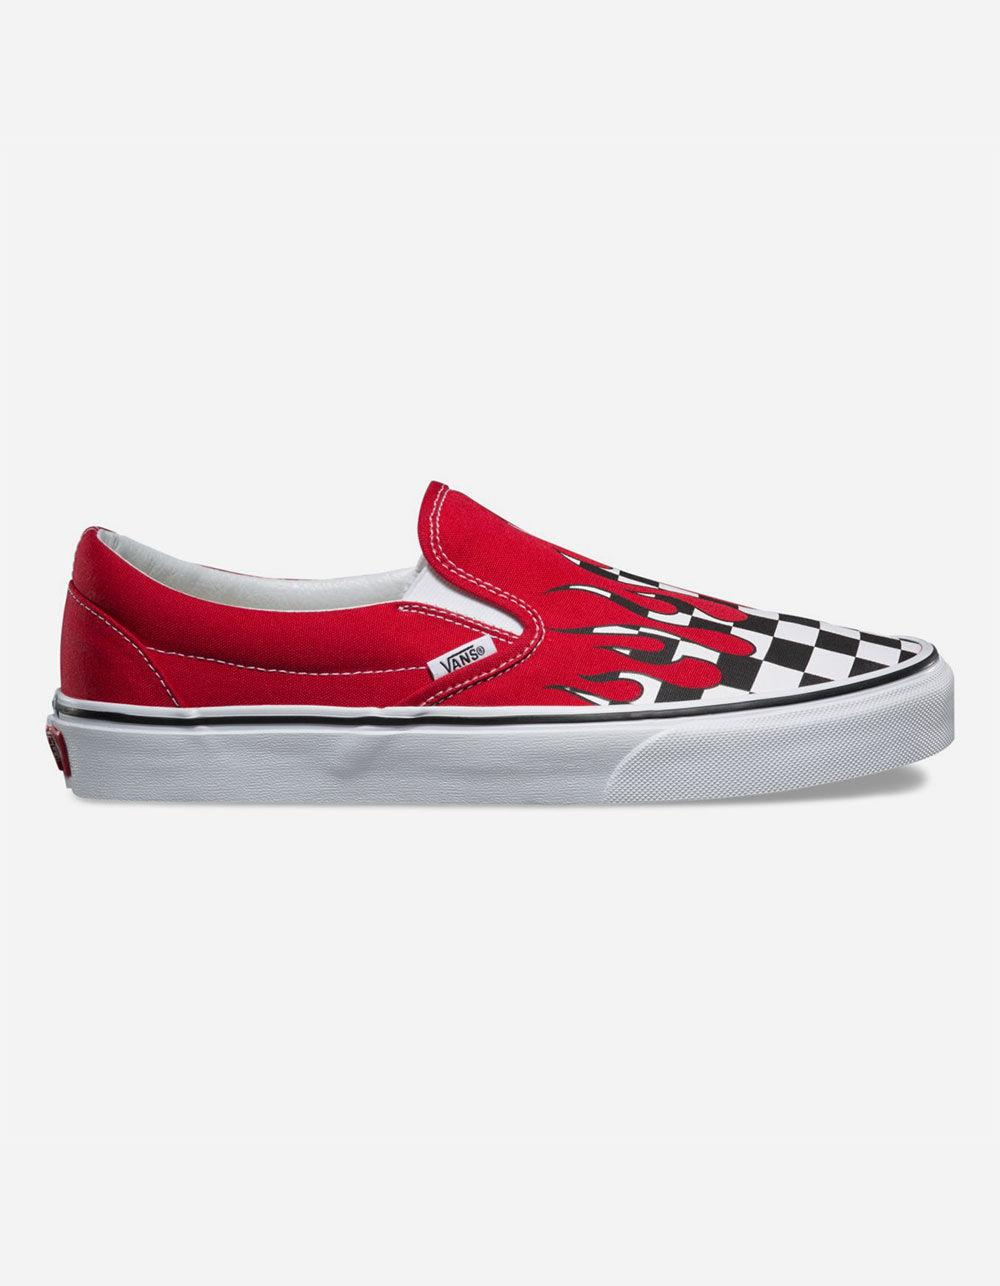 Lyst - Vans Classic Slip On Trainers in Red - Save 30% 917758bac